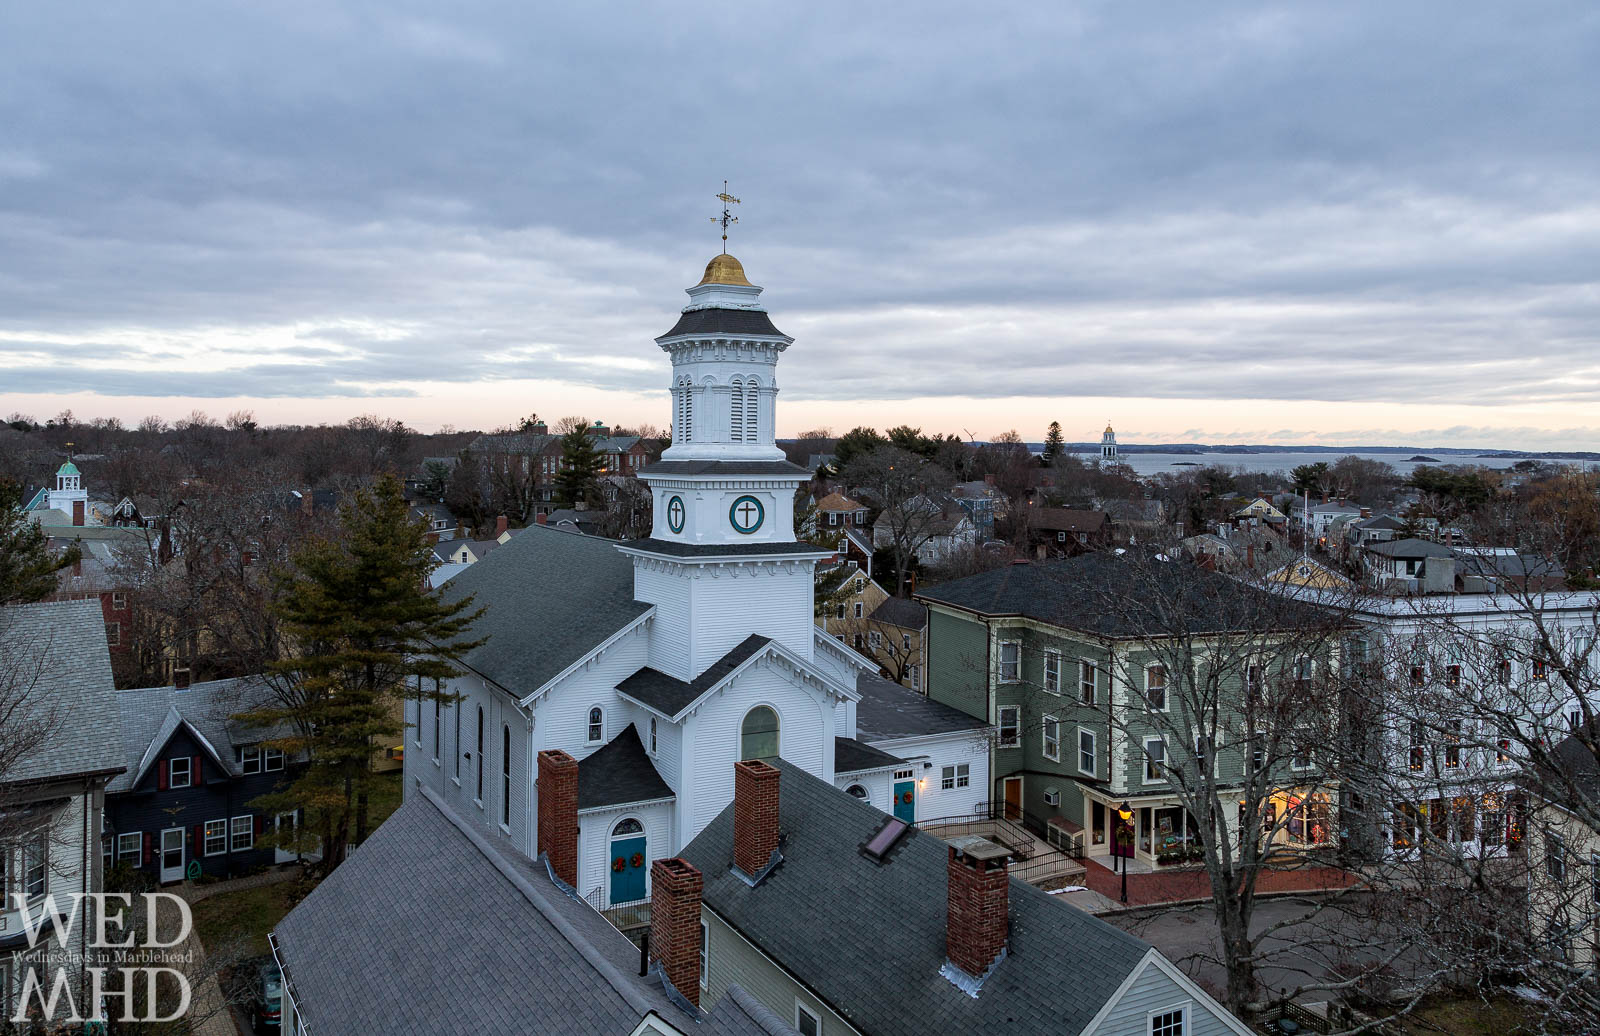 A view of Pleasant Street at dawn from atop St. Michael's steeple showcases Grace Community Church and stores in historic downtown Marblehead